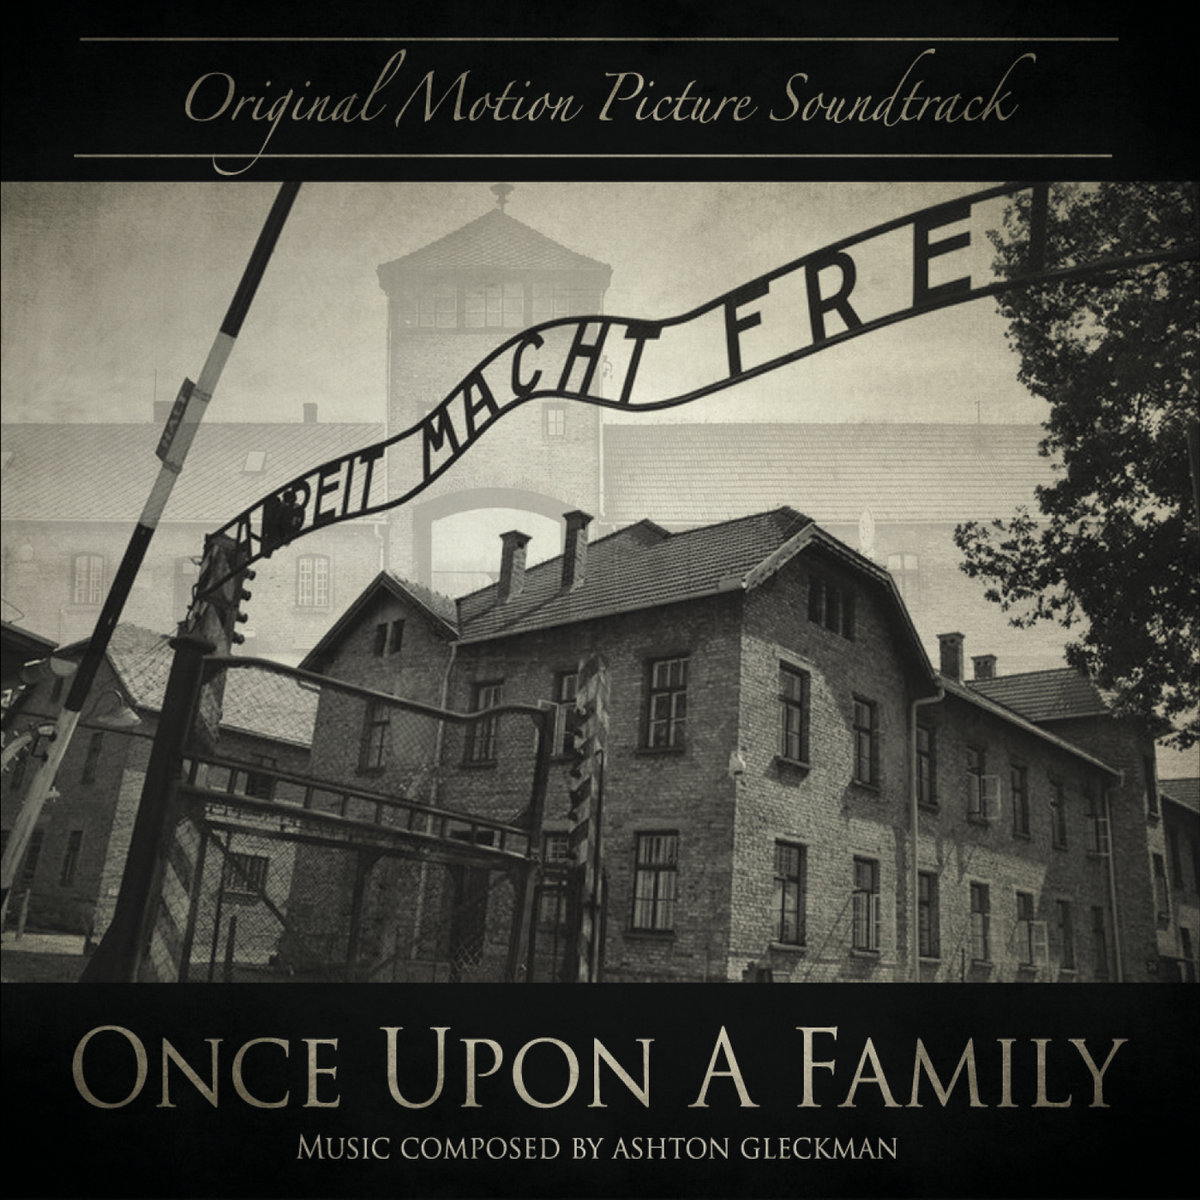 once upon a family essay In the book (daley, 2007) once upon a family by author margaret daley, we read about a character by the name of sean williams who is helped by his principal at cimarron high, where he attends school, by the name of peter stone.